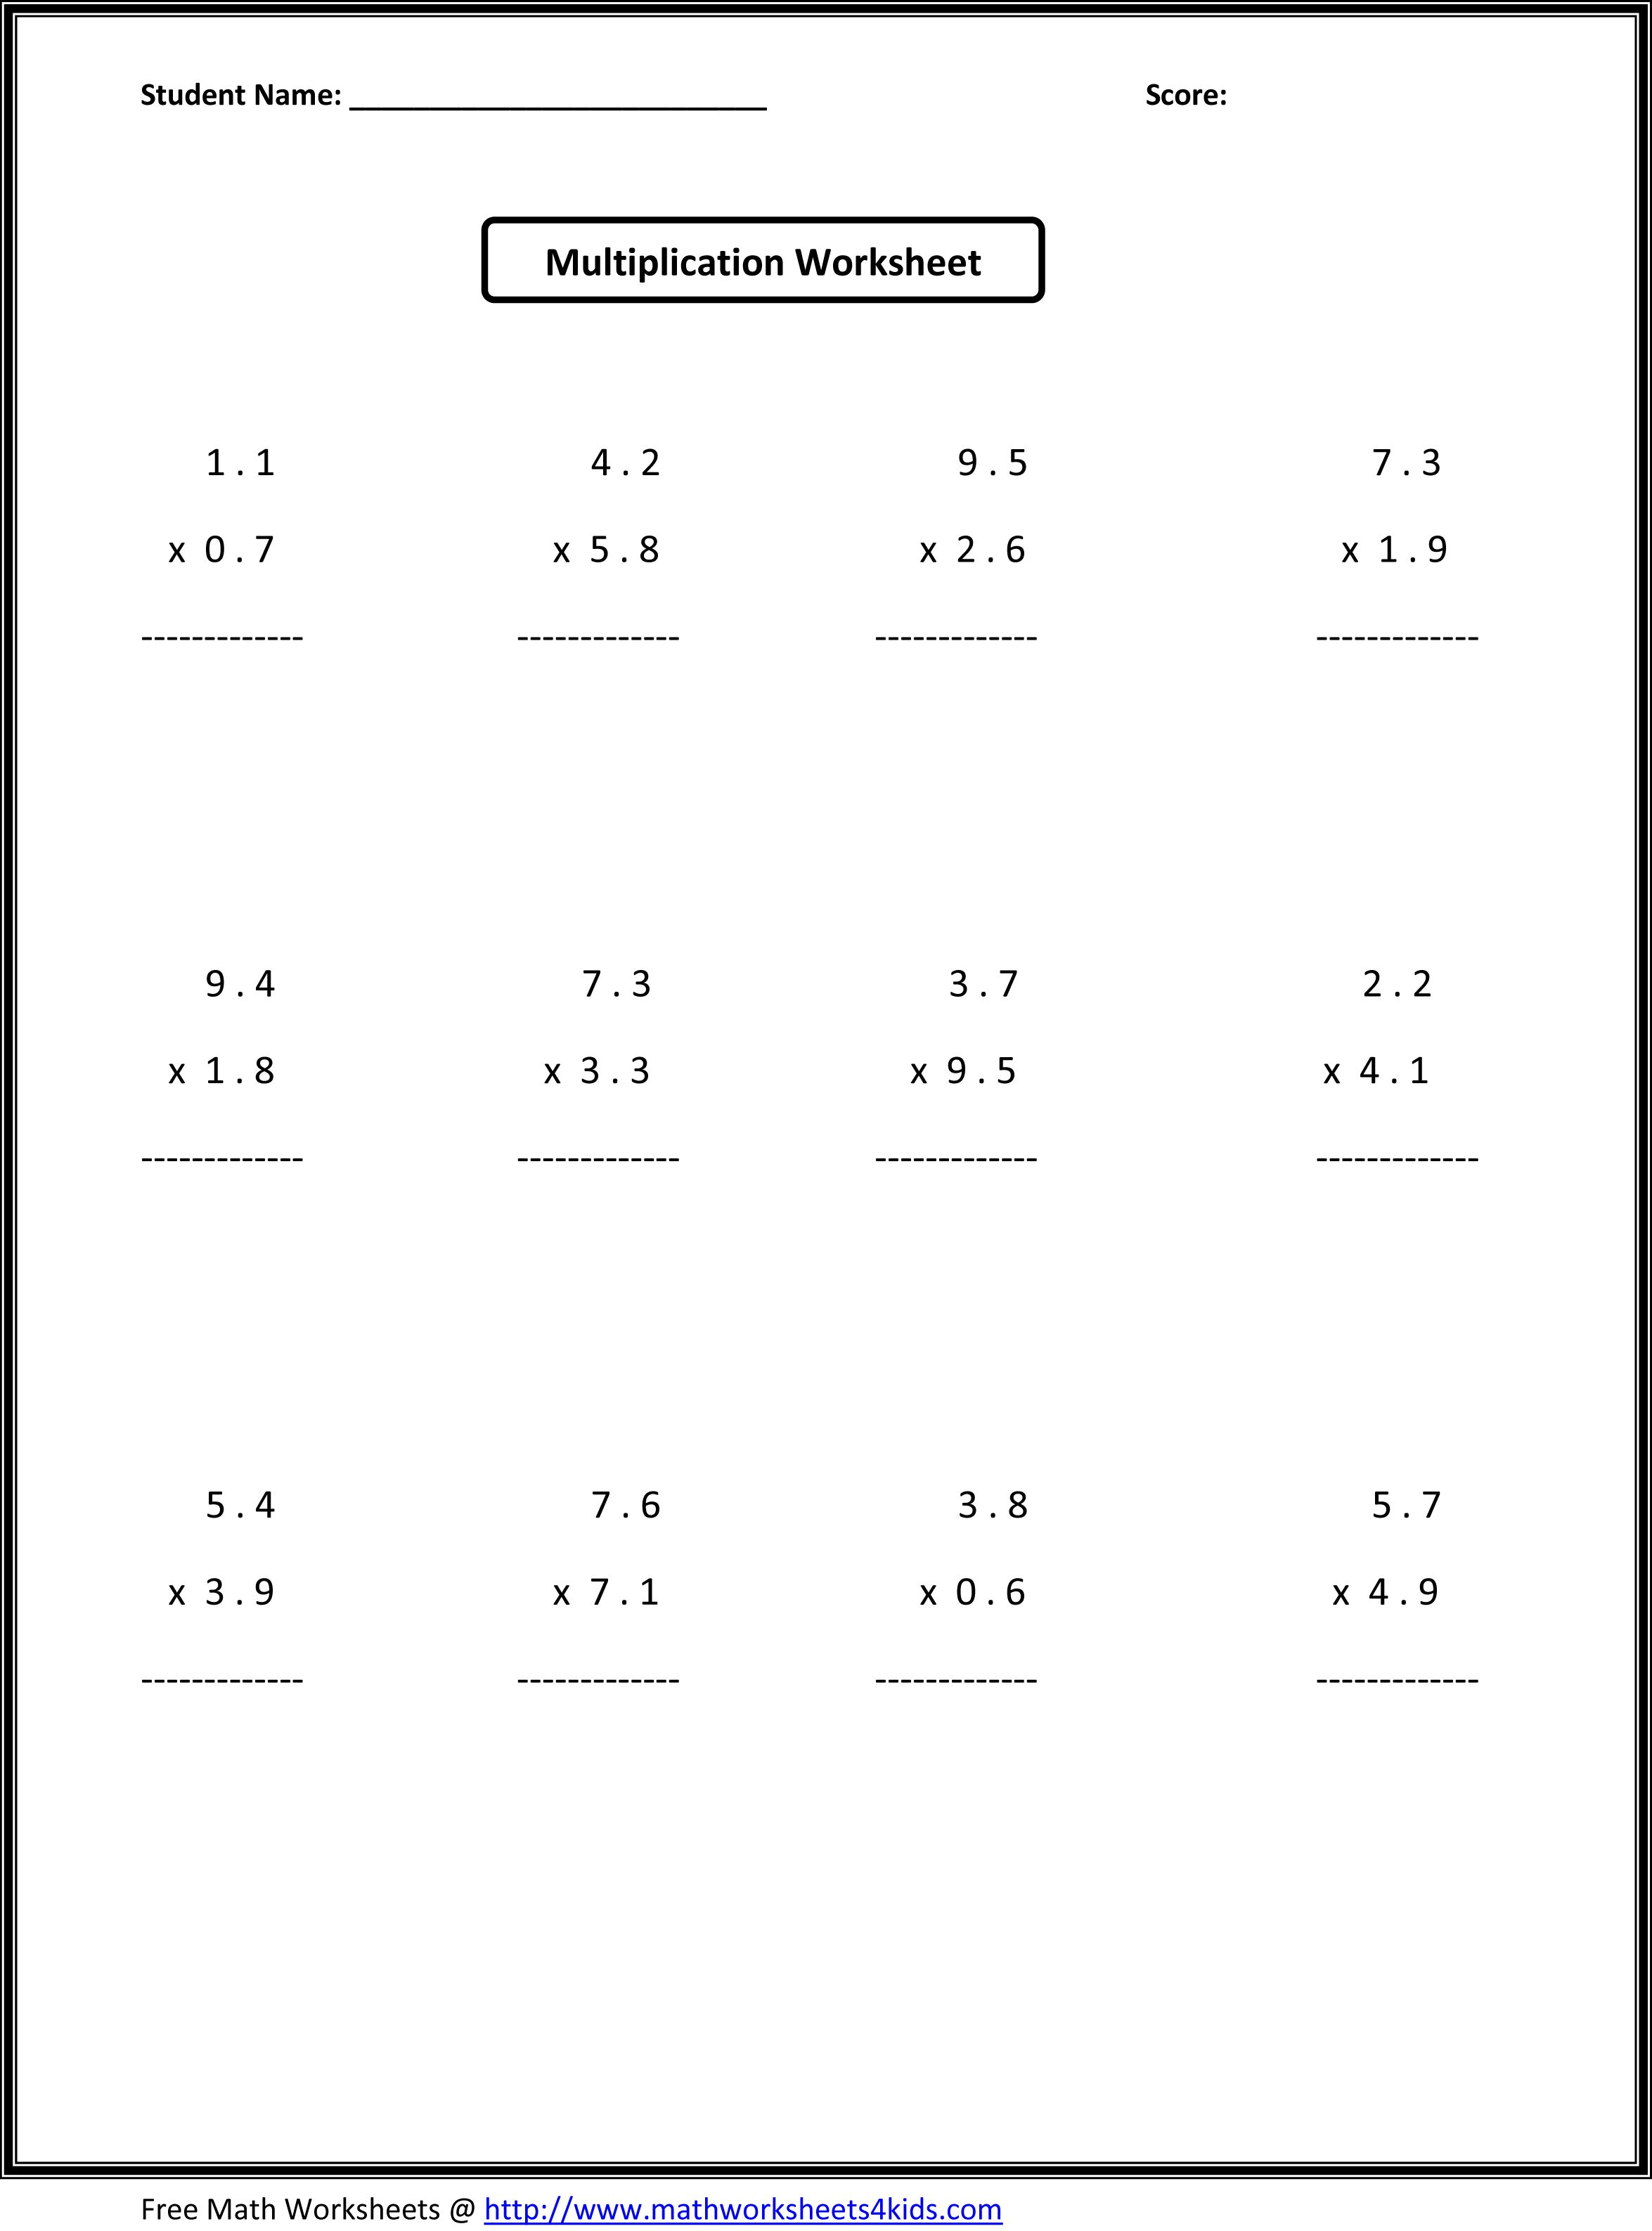 7Th Grade Math Worksheets | Value Worksheets Absolute Value | Multiplication Worksheets 7Th Grade Printable